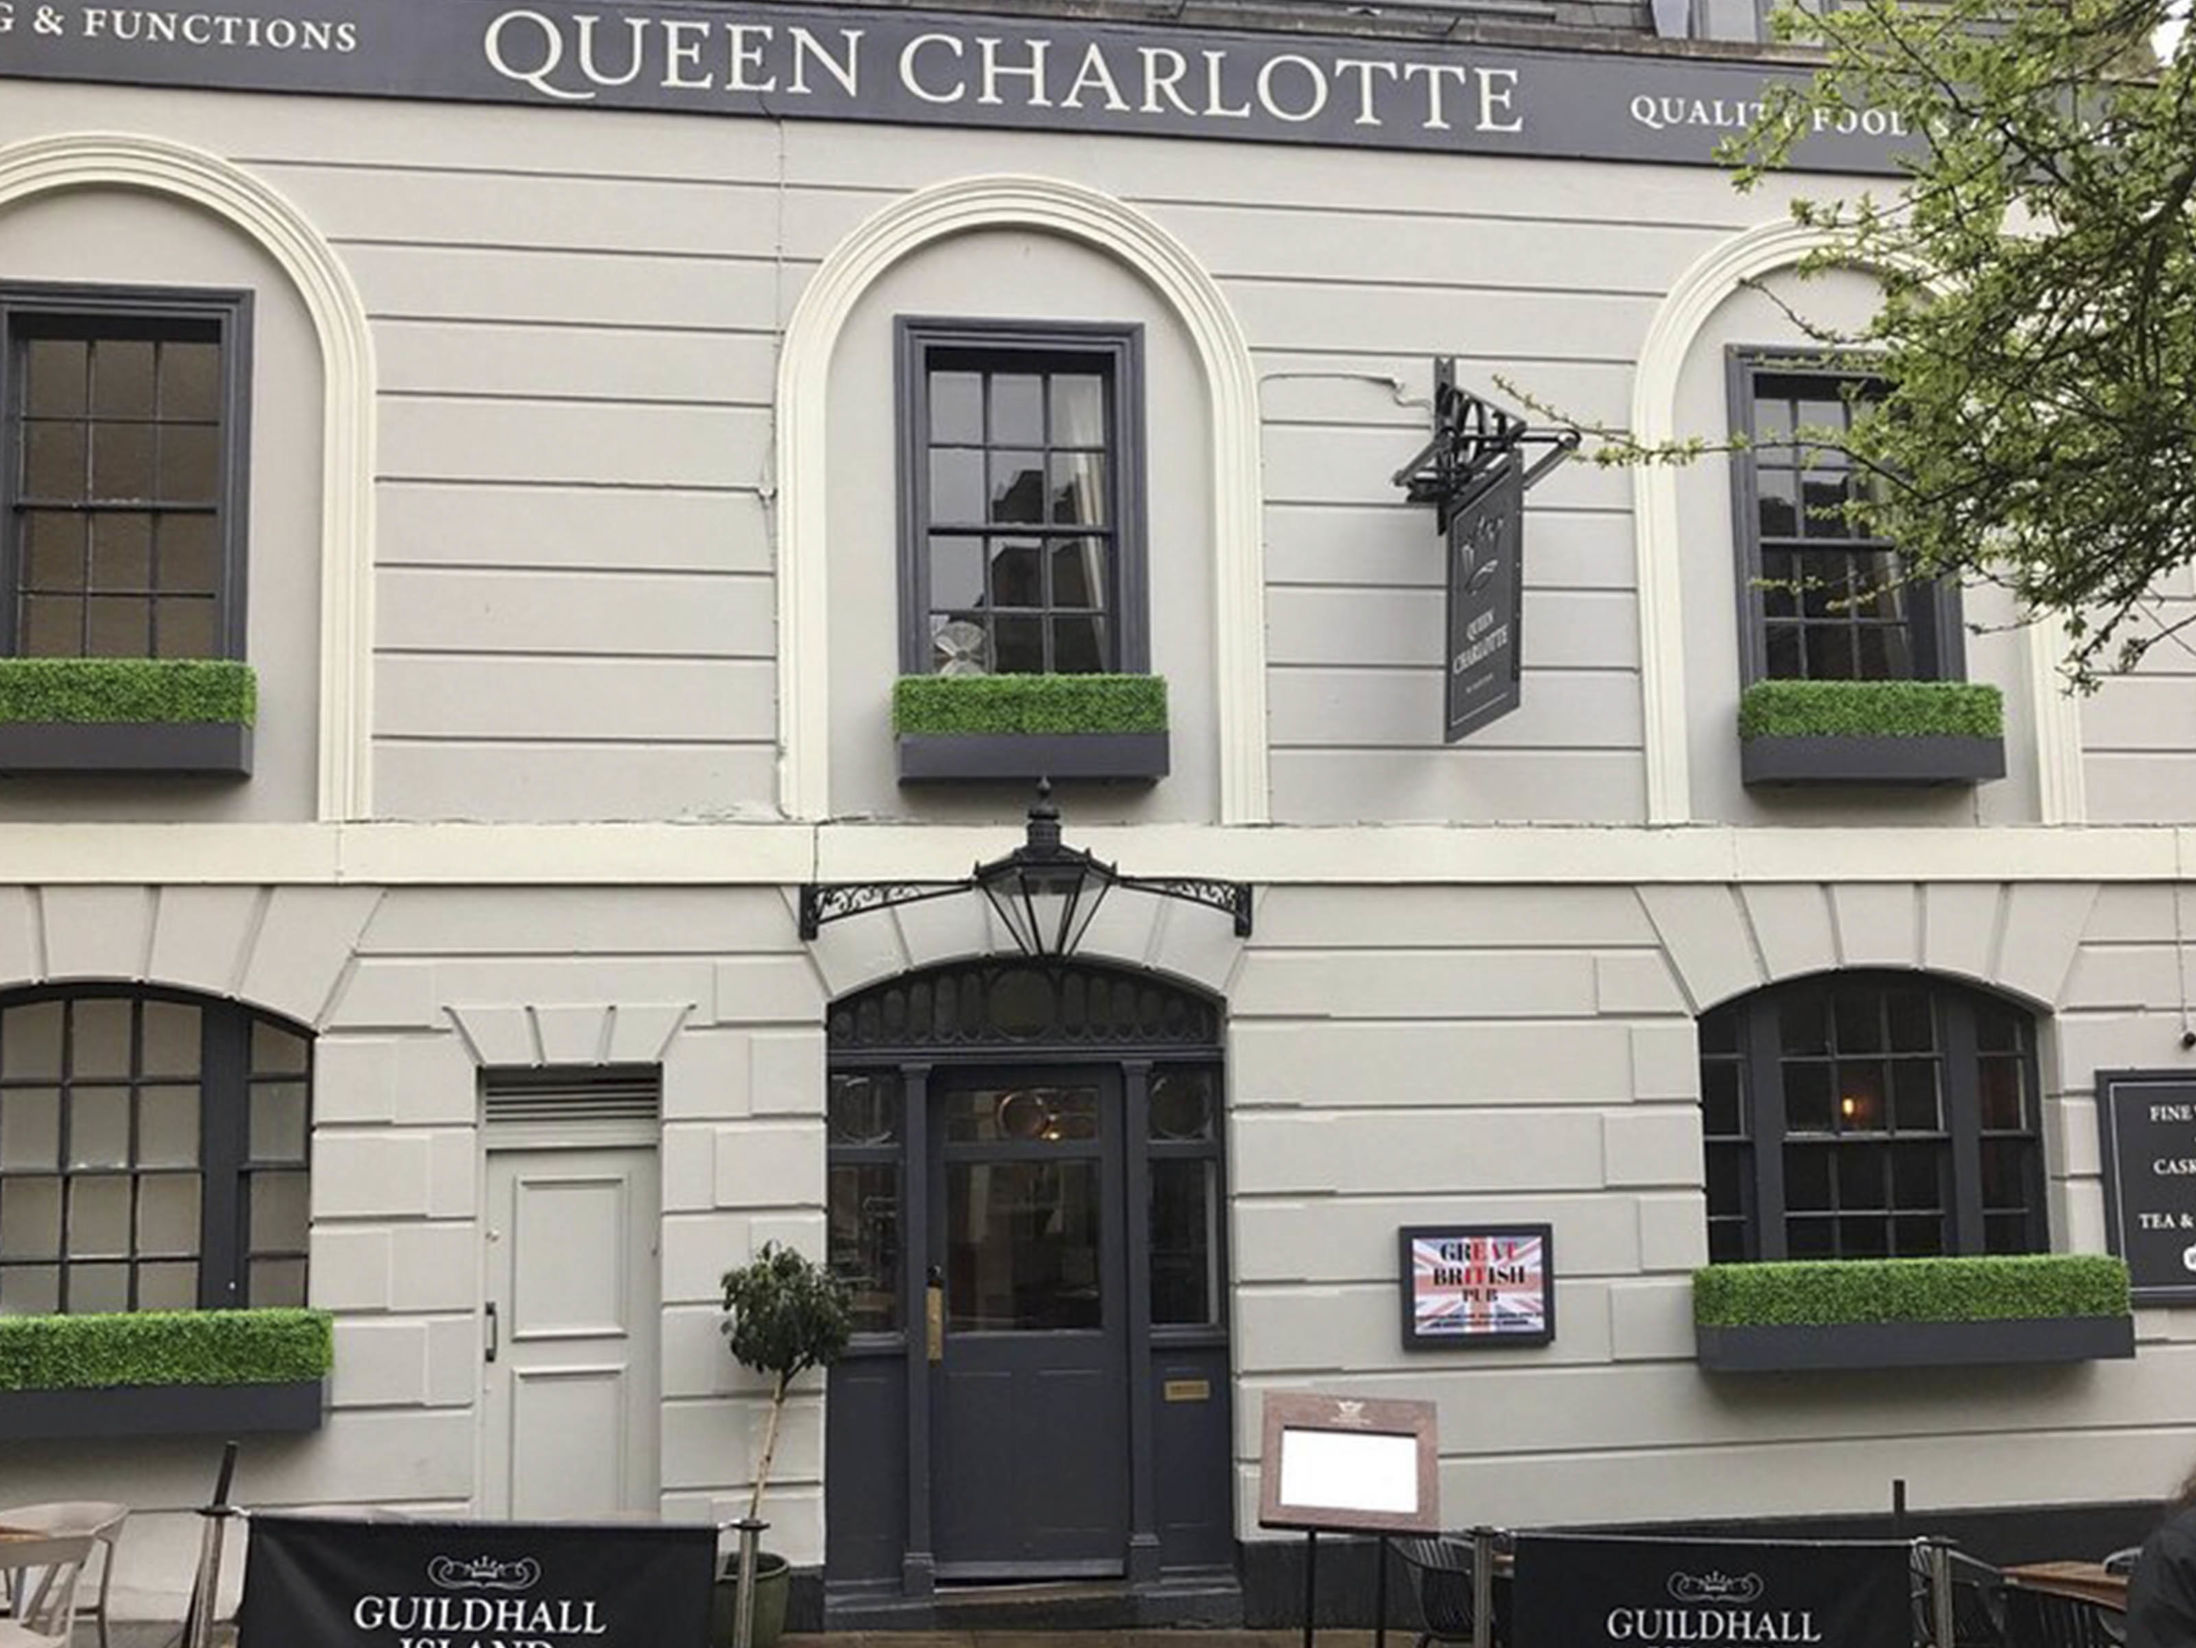 Best Pubs in Windsor - The Queen Charlotte